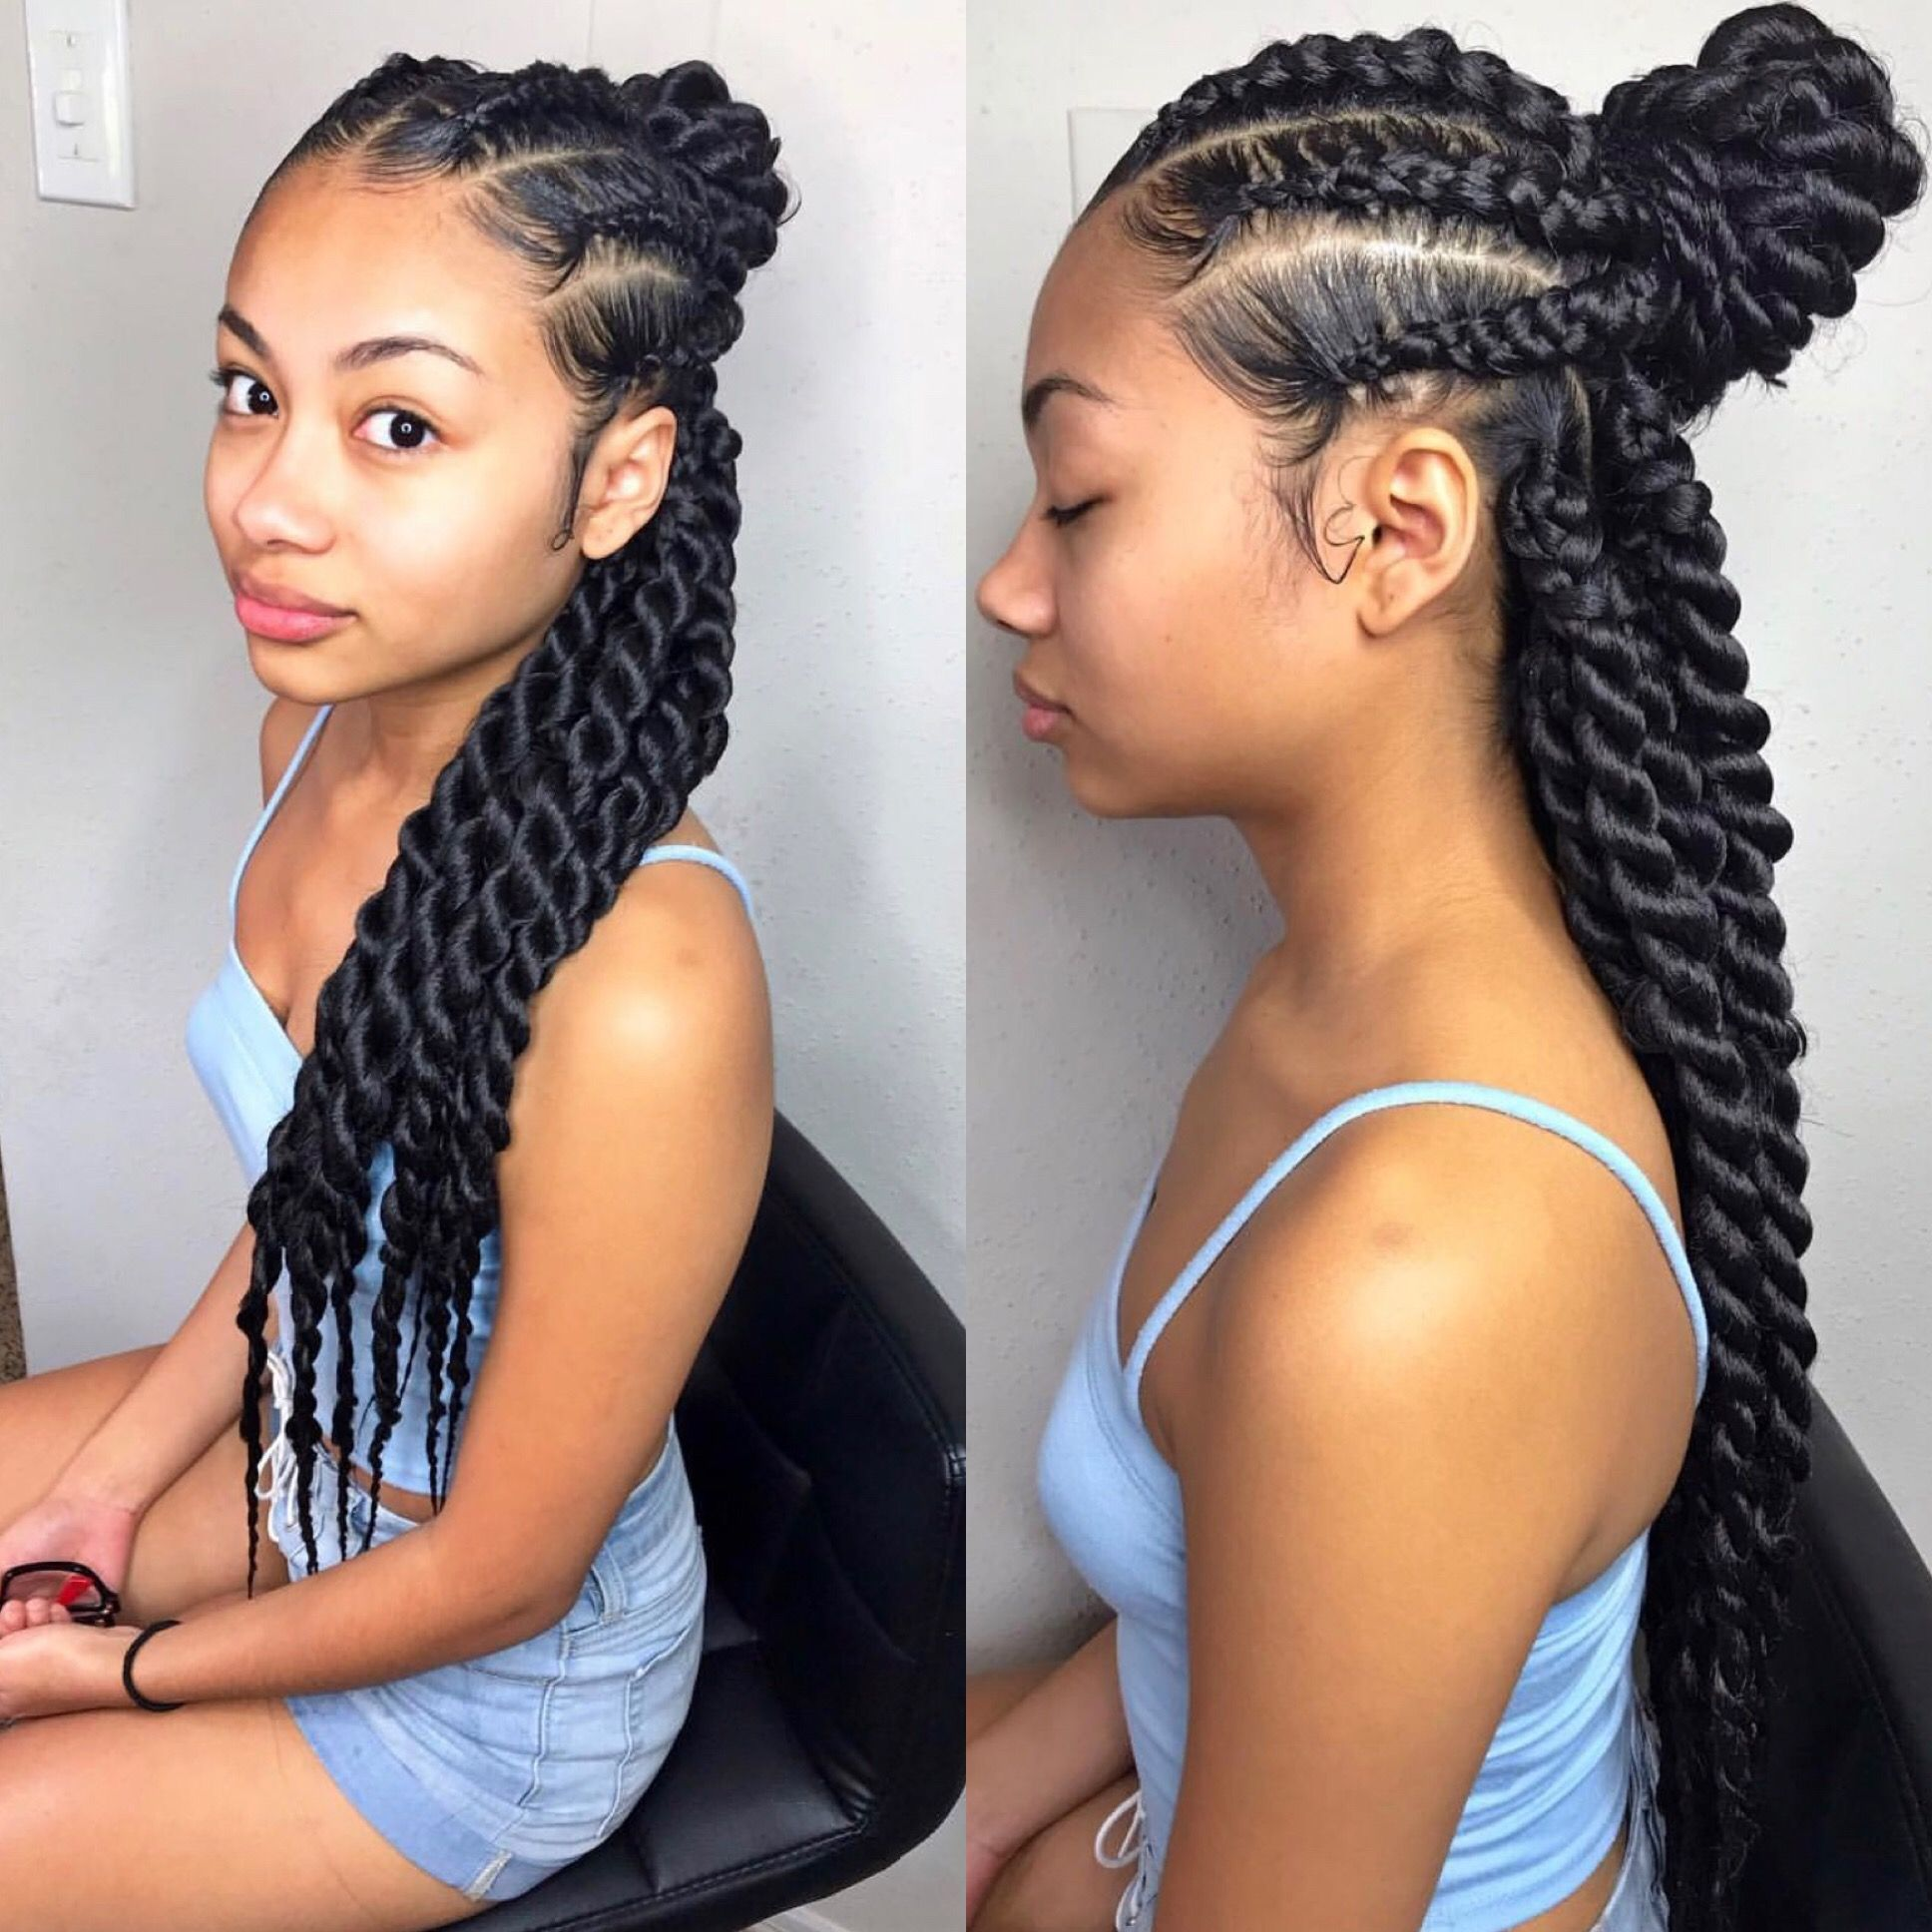 half up/half down twists by @/trapprinzess on ig (With images) | Cool braid hairstyles, Half ...